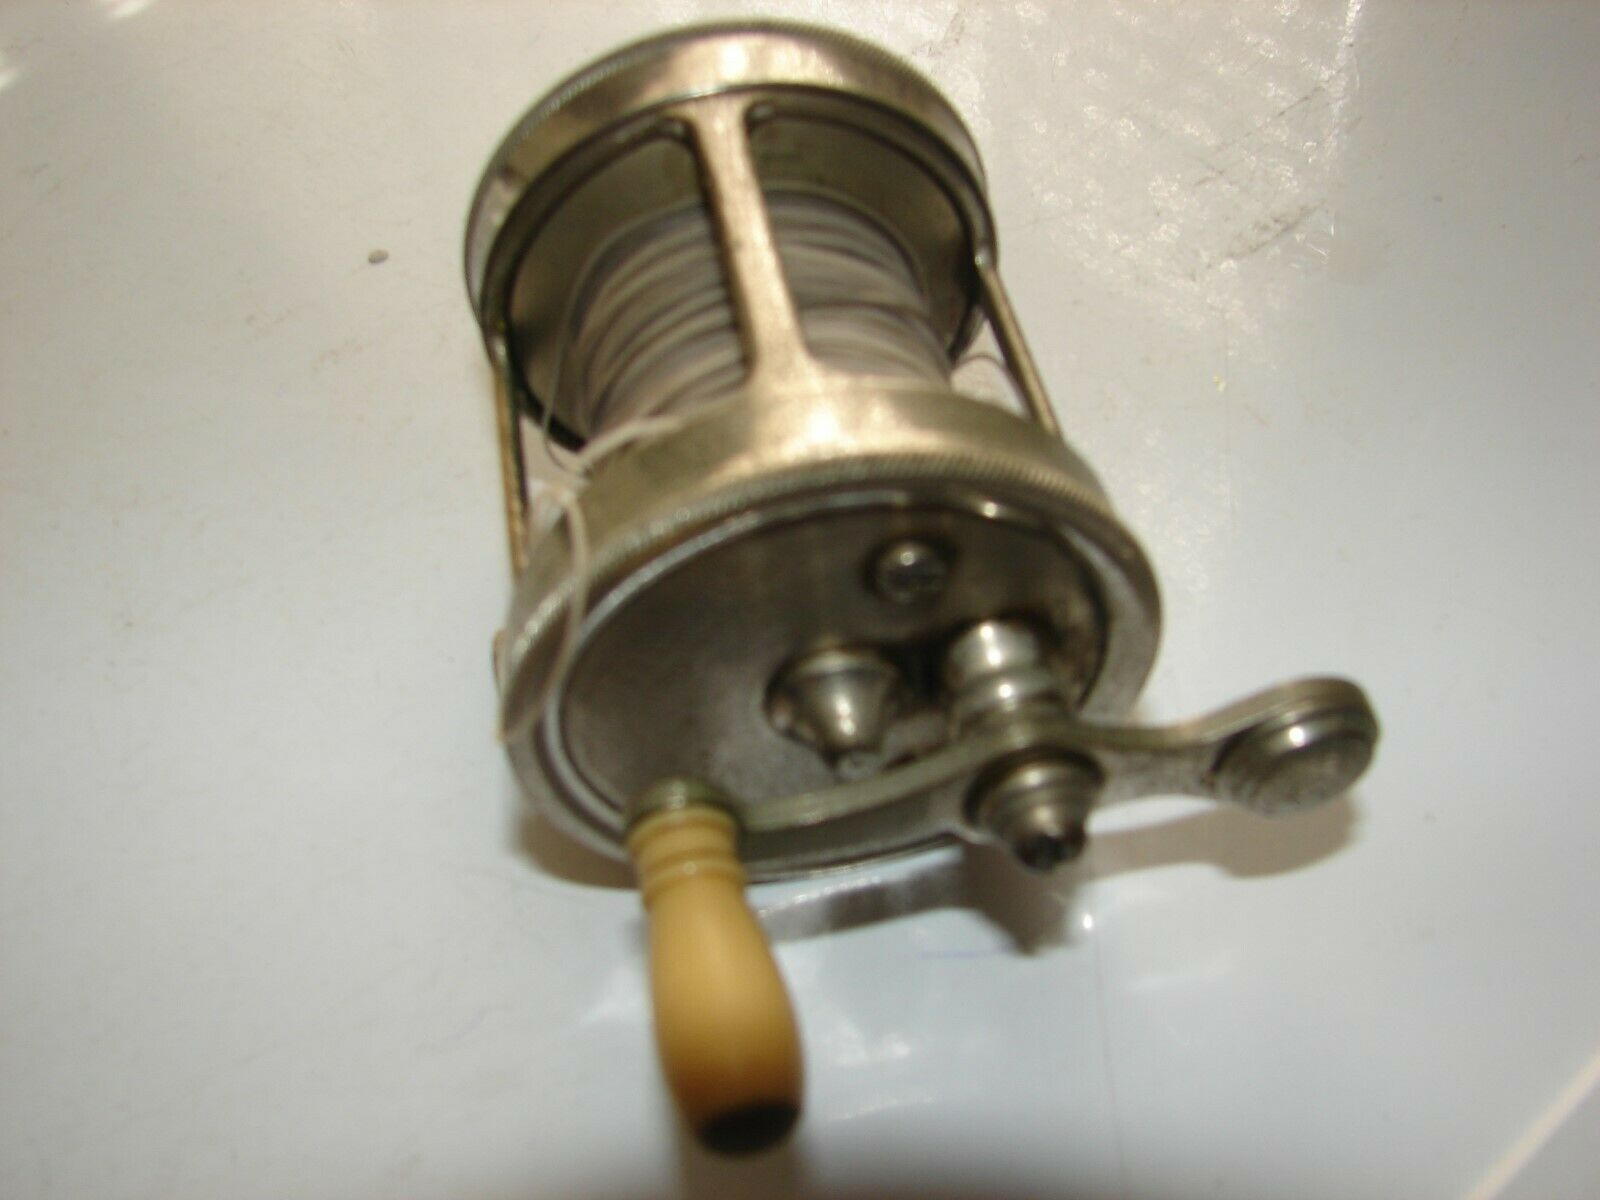 Vintage A.F.Meisselbach & Bros.   Tripart  580 ,Bait casting Freash Water Reel.  save 35% - 70% off